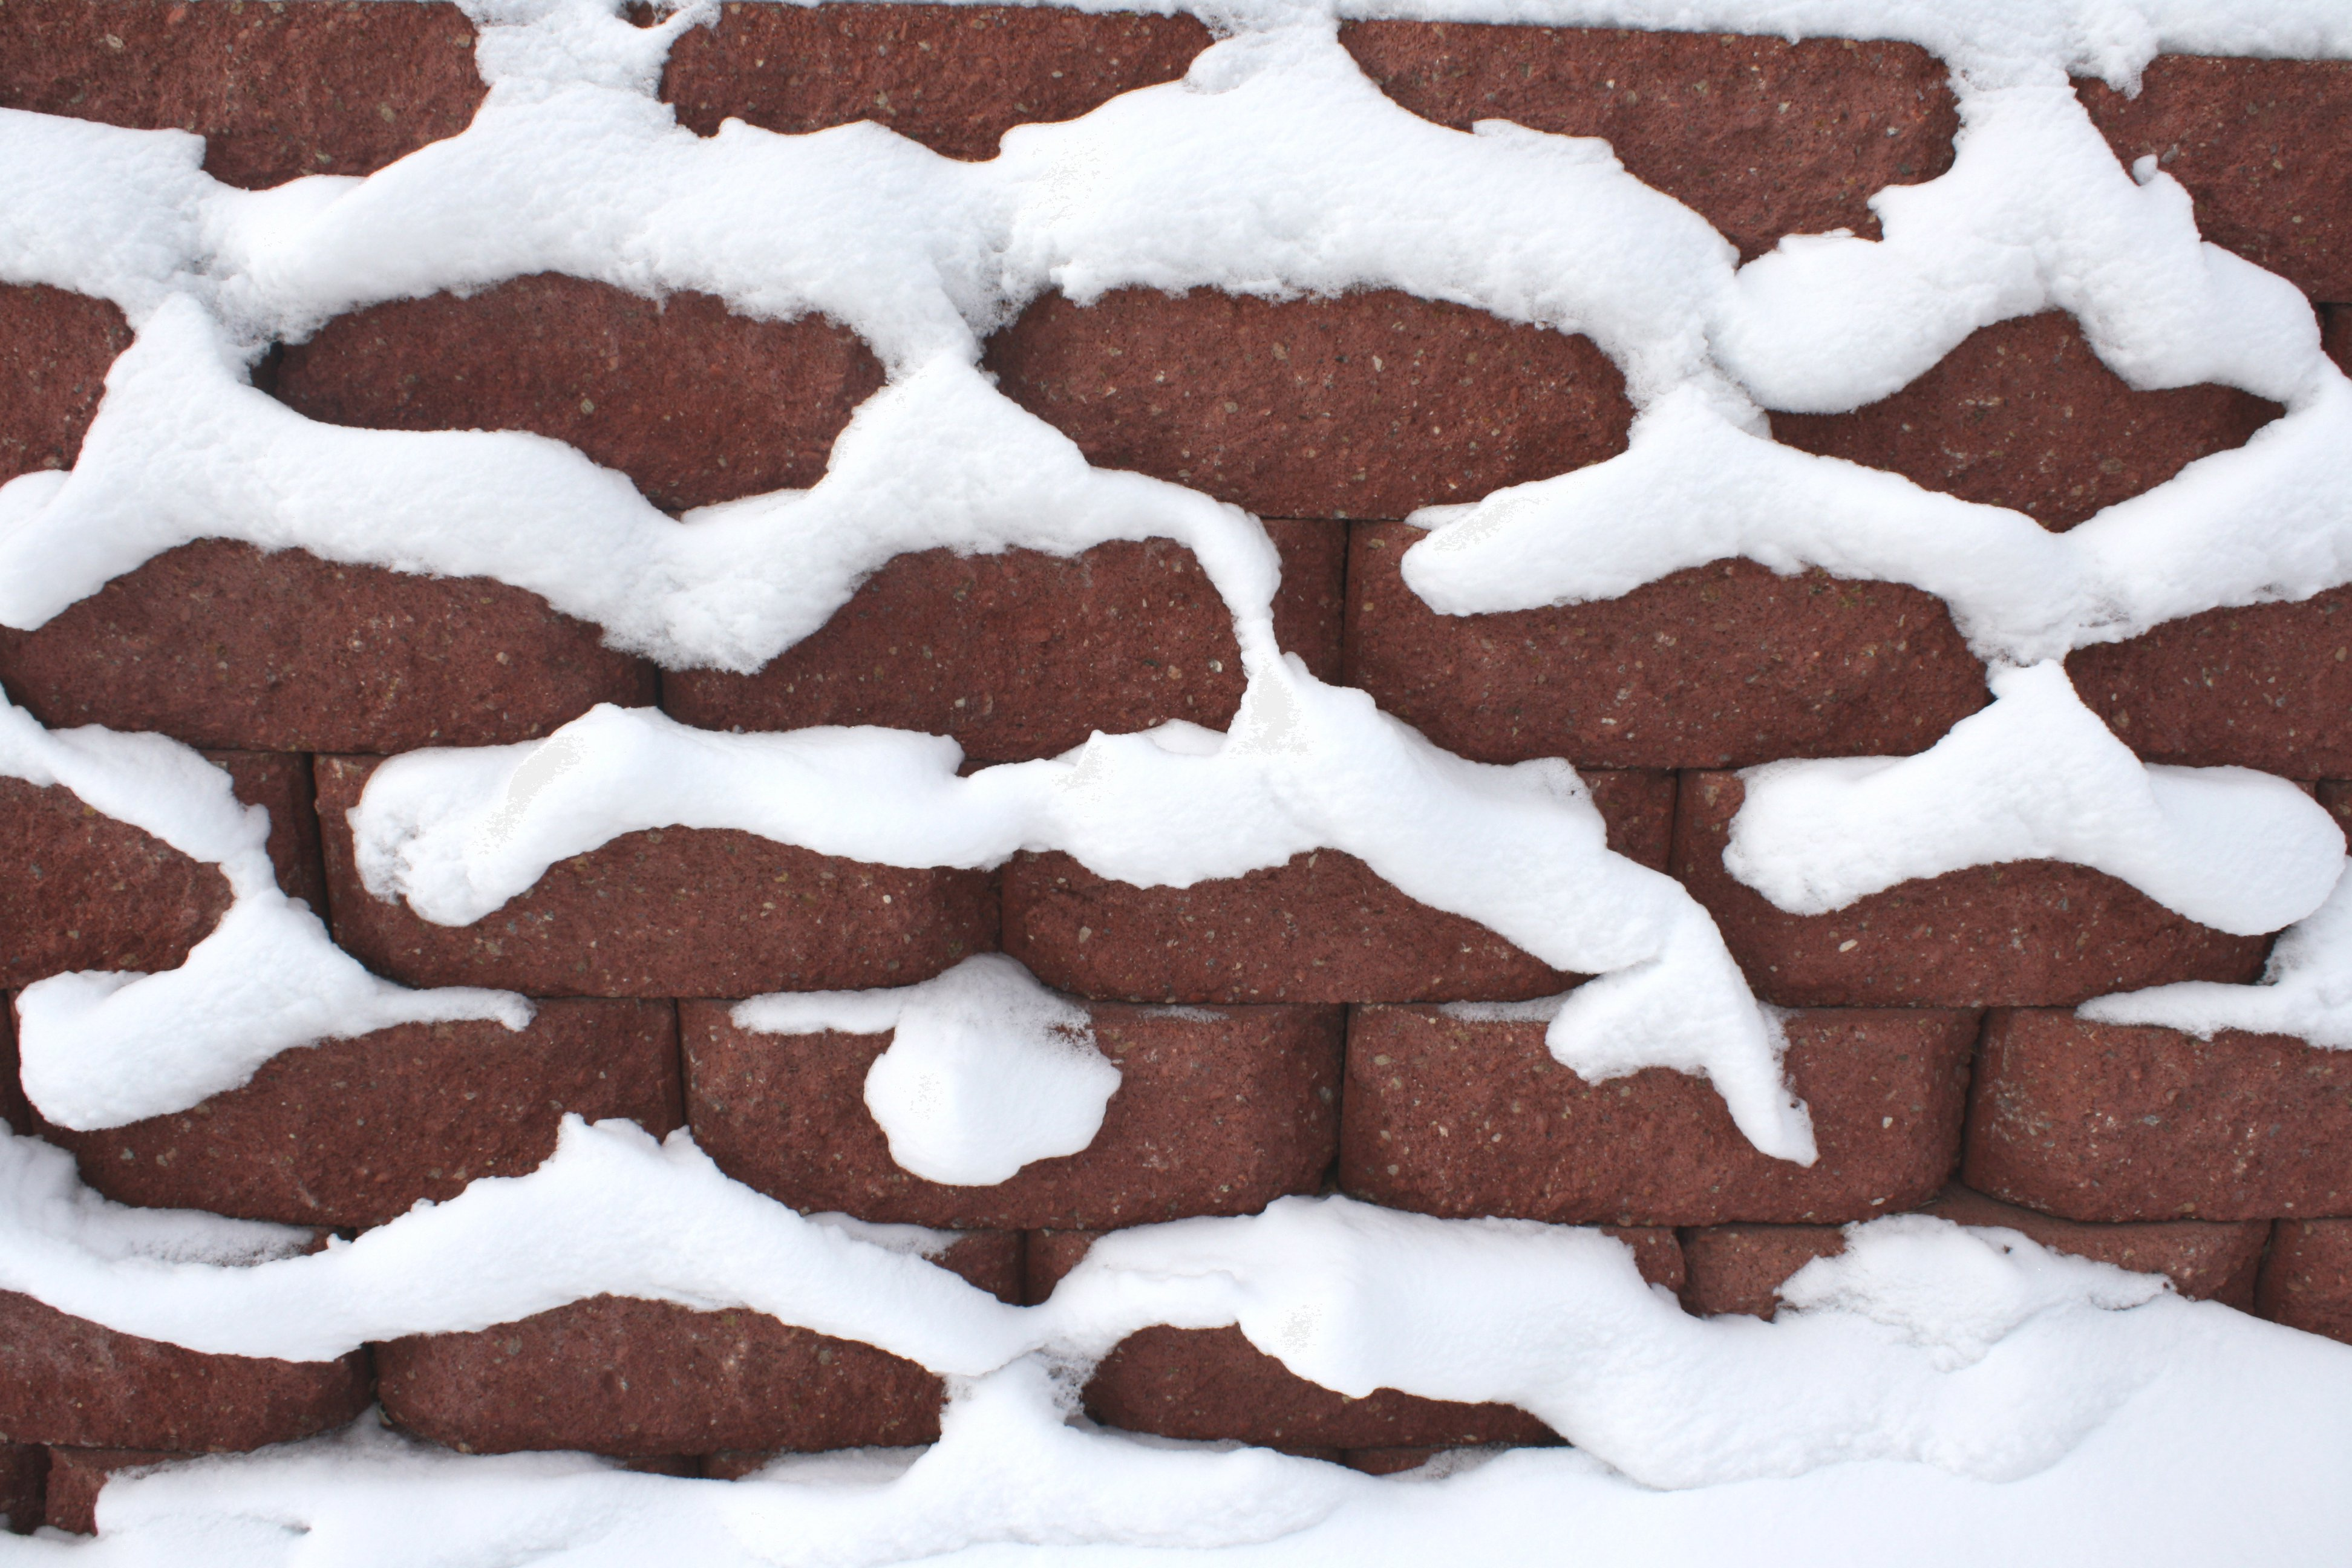 Snow On Brick Wall Texture Picture Free Photograph